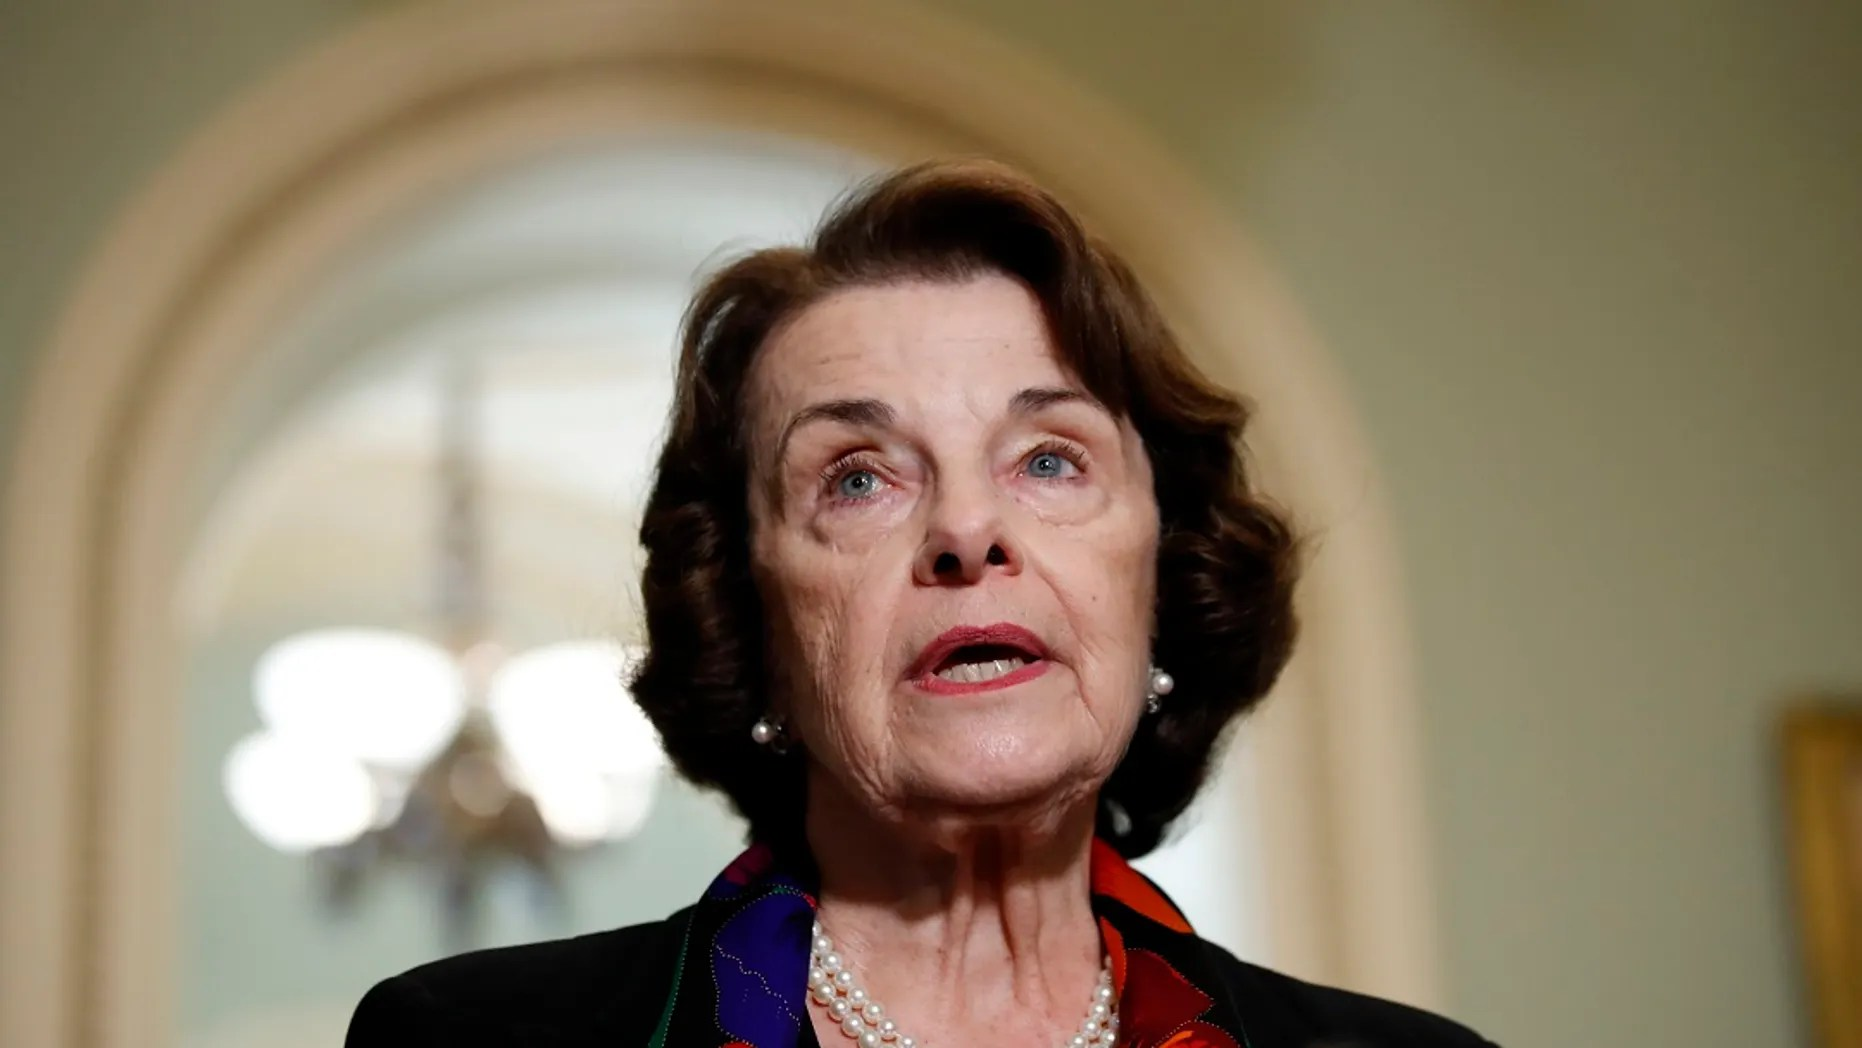 Feinstein urged Obama in 2014 to use 'broad power' to limit immigration | Fox News